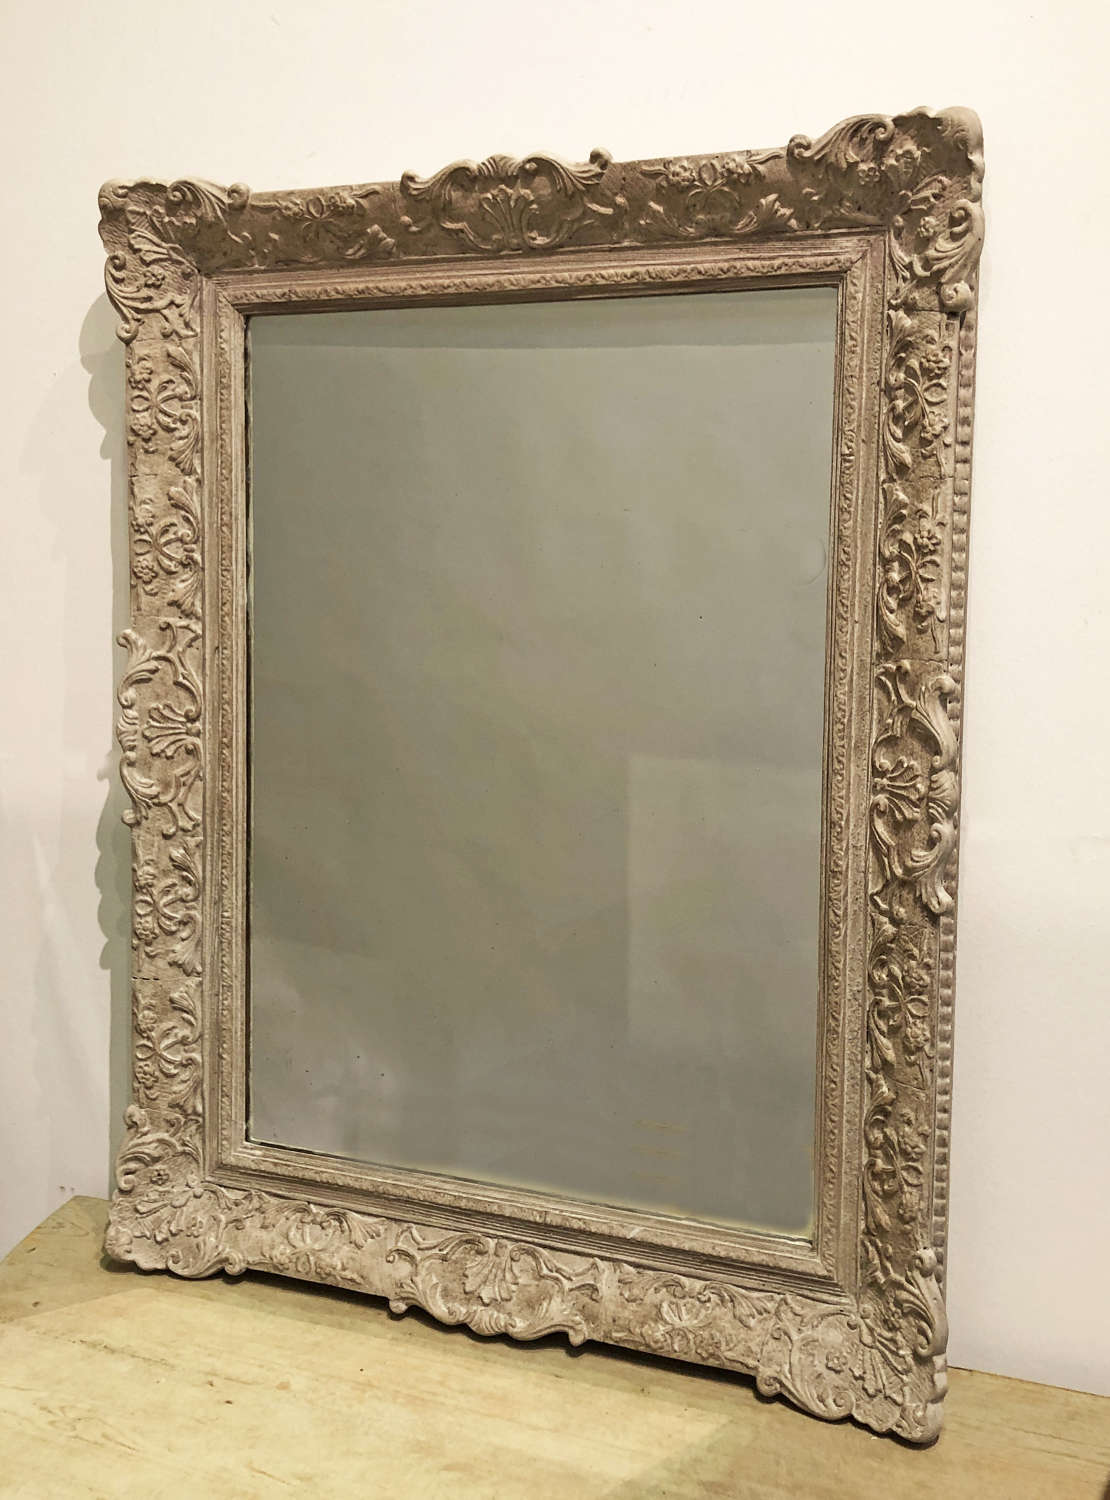 19th century French carved Mirror - Circa 1890